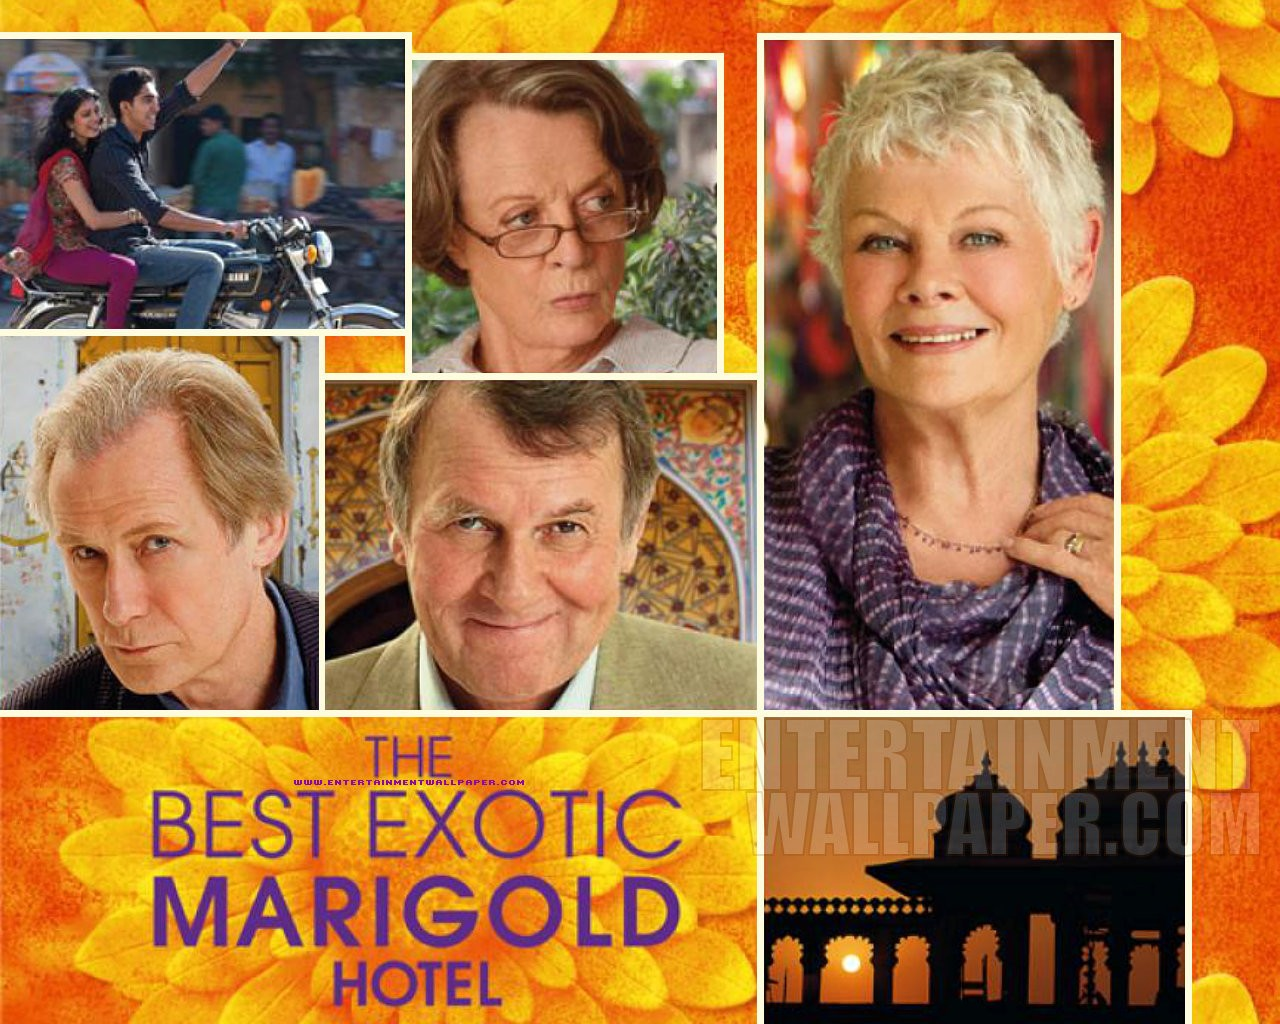 the most exotic marigold hotel (2015) dev patel, maggie smith, richard gere, judi dench and bill nighy star in  the sequel to the hit comedy sonny and muriel decide to open a second hotel.